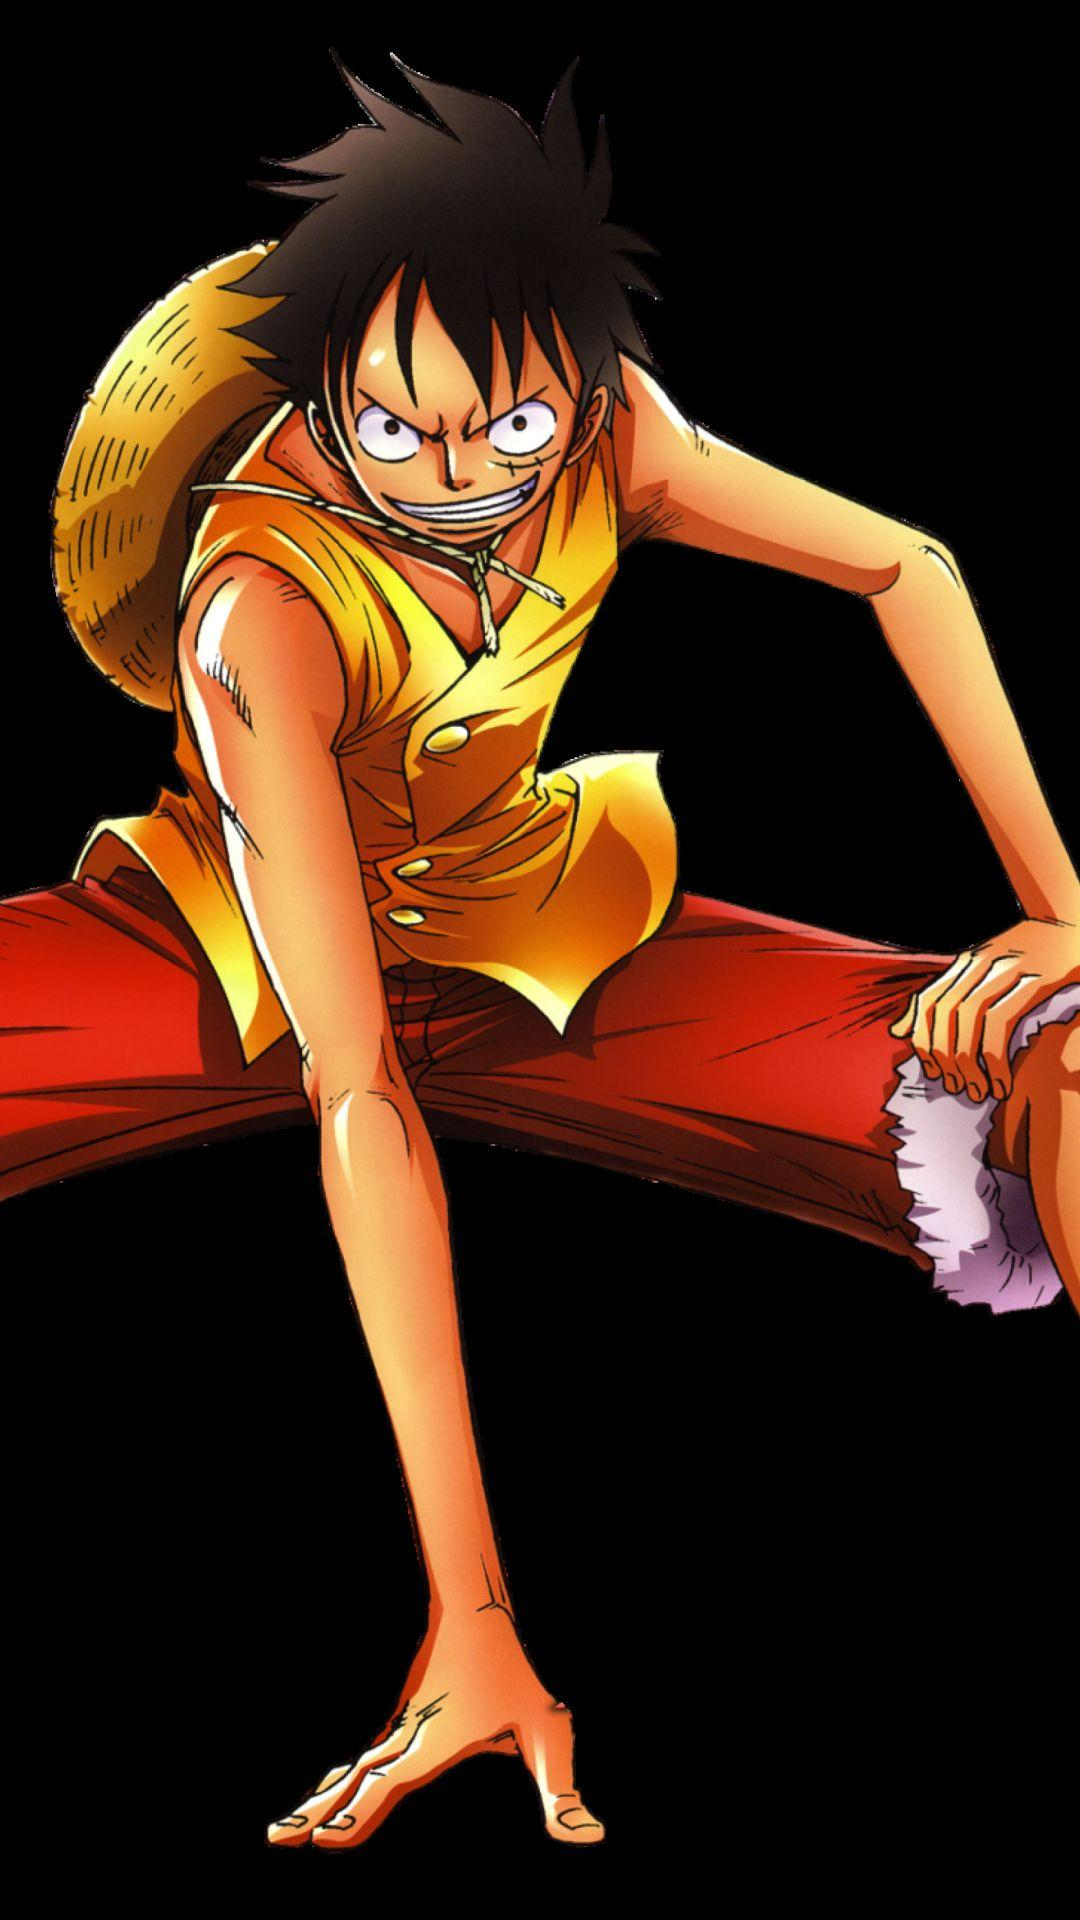 Monkey D Luffy One Piece Iphone Wallpaper.